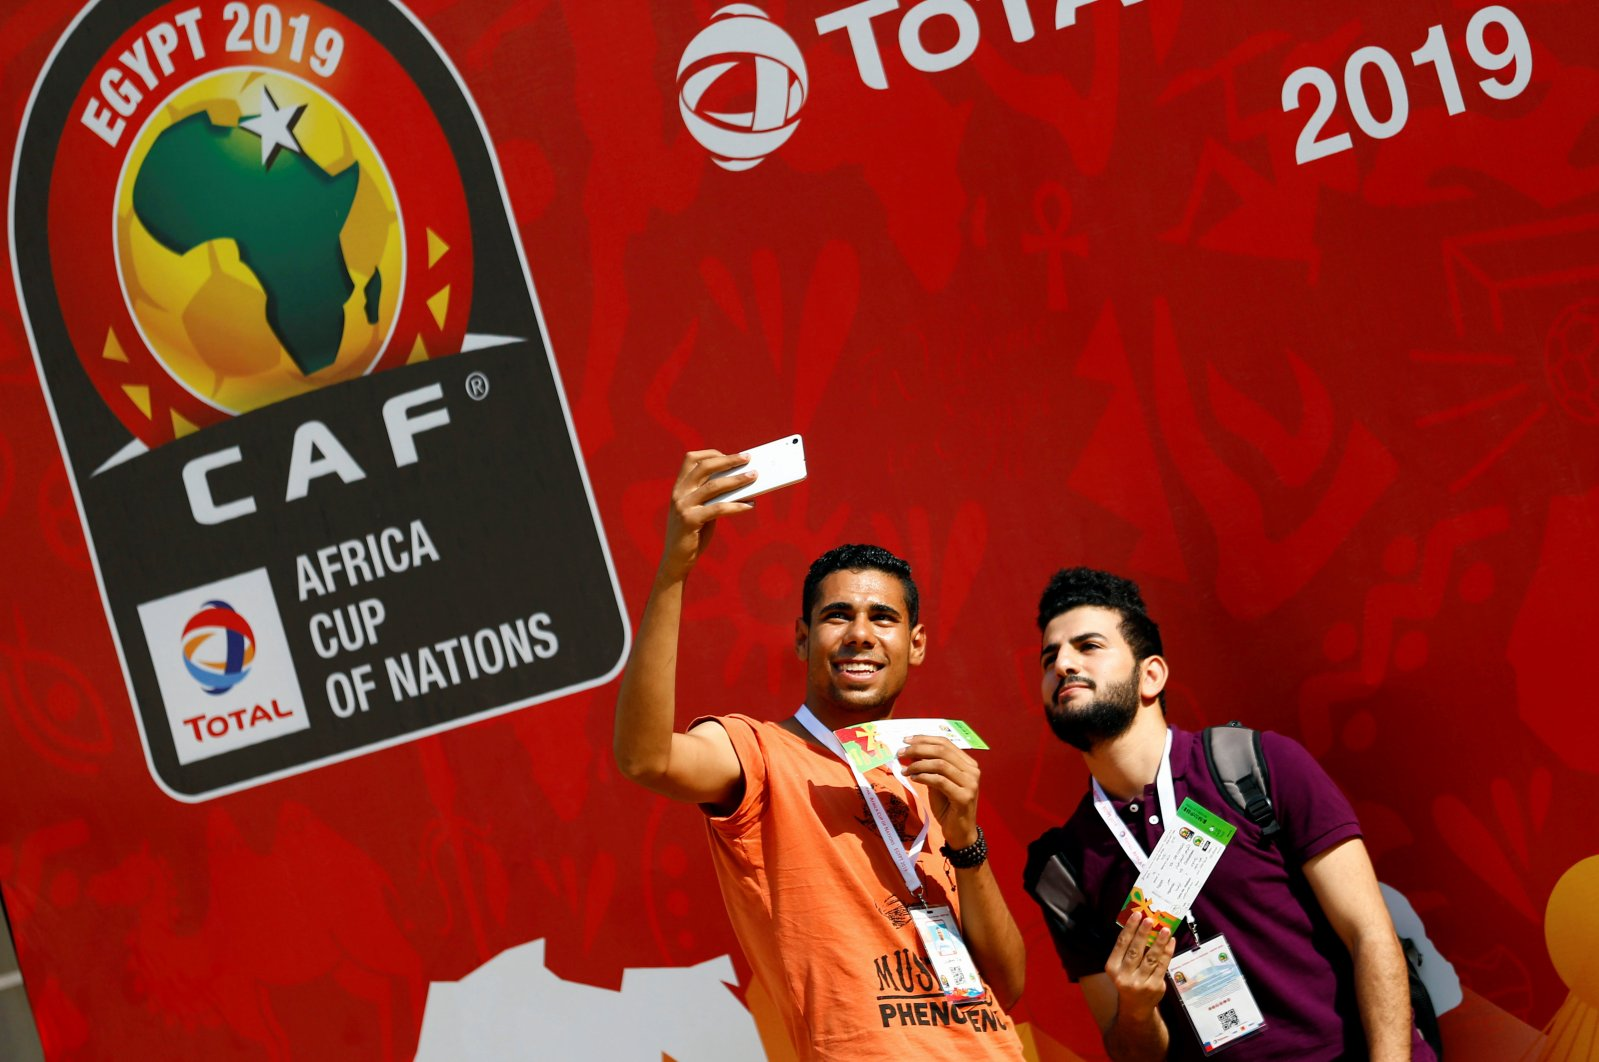 Youths take a selfie with opening soccer match tickets for African Nation Cup between Egypt and Zimbabwe in front of the tournament banner, Cairo, Egypt, June 12, 2019. (Reuters Photo)